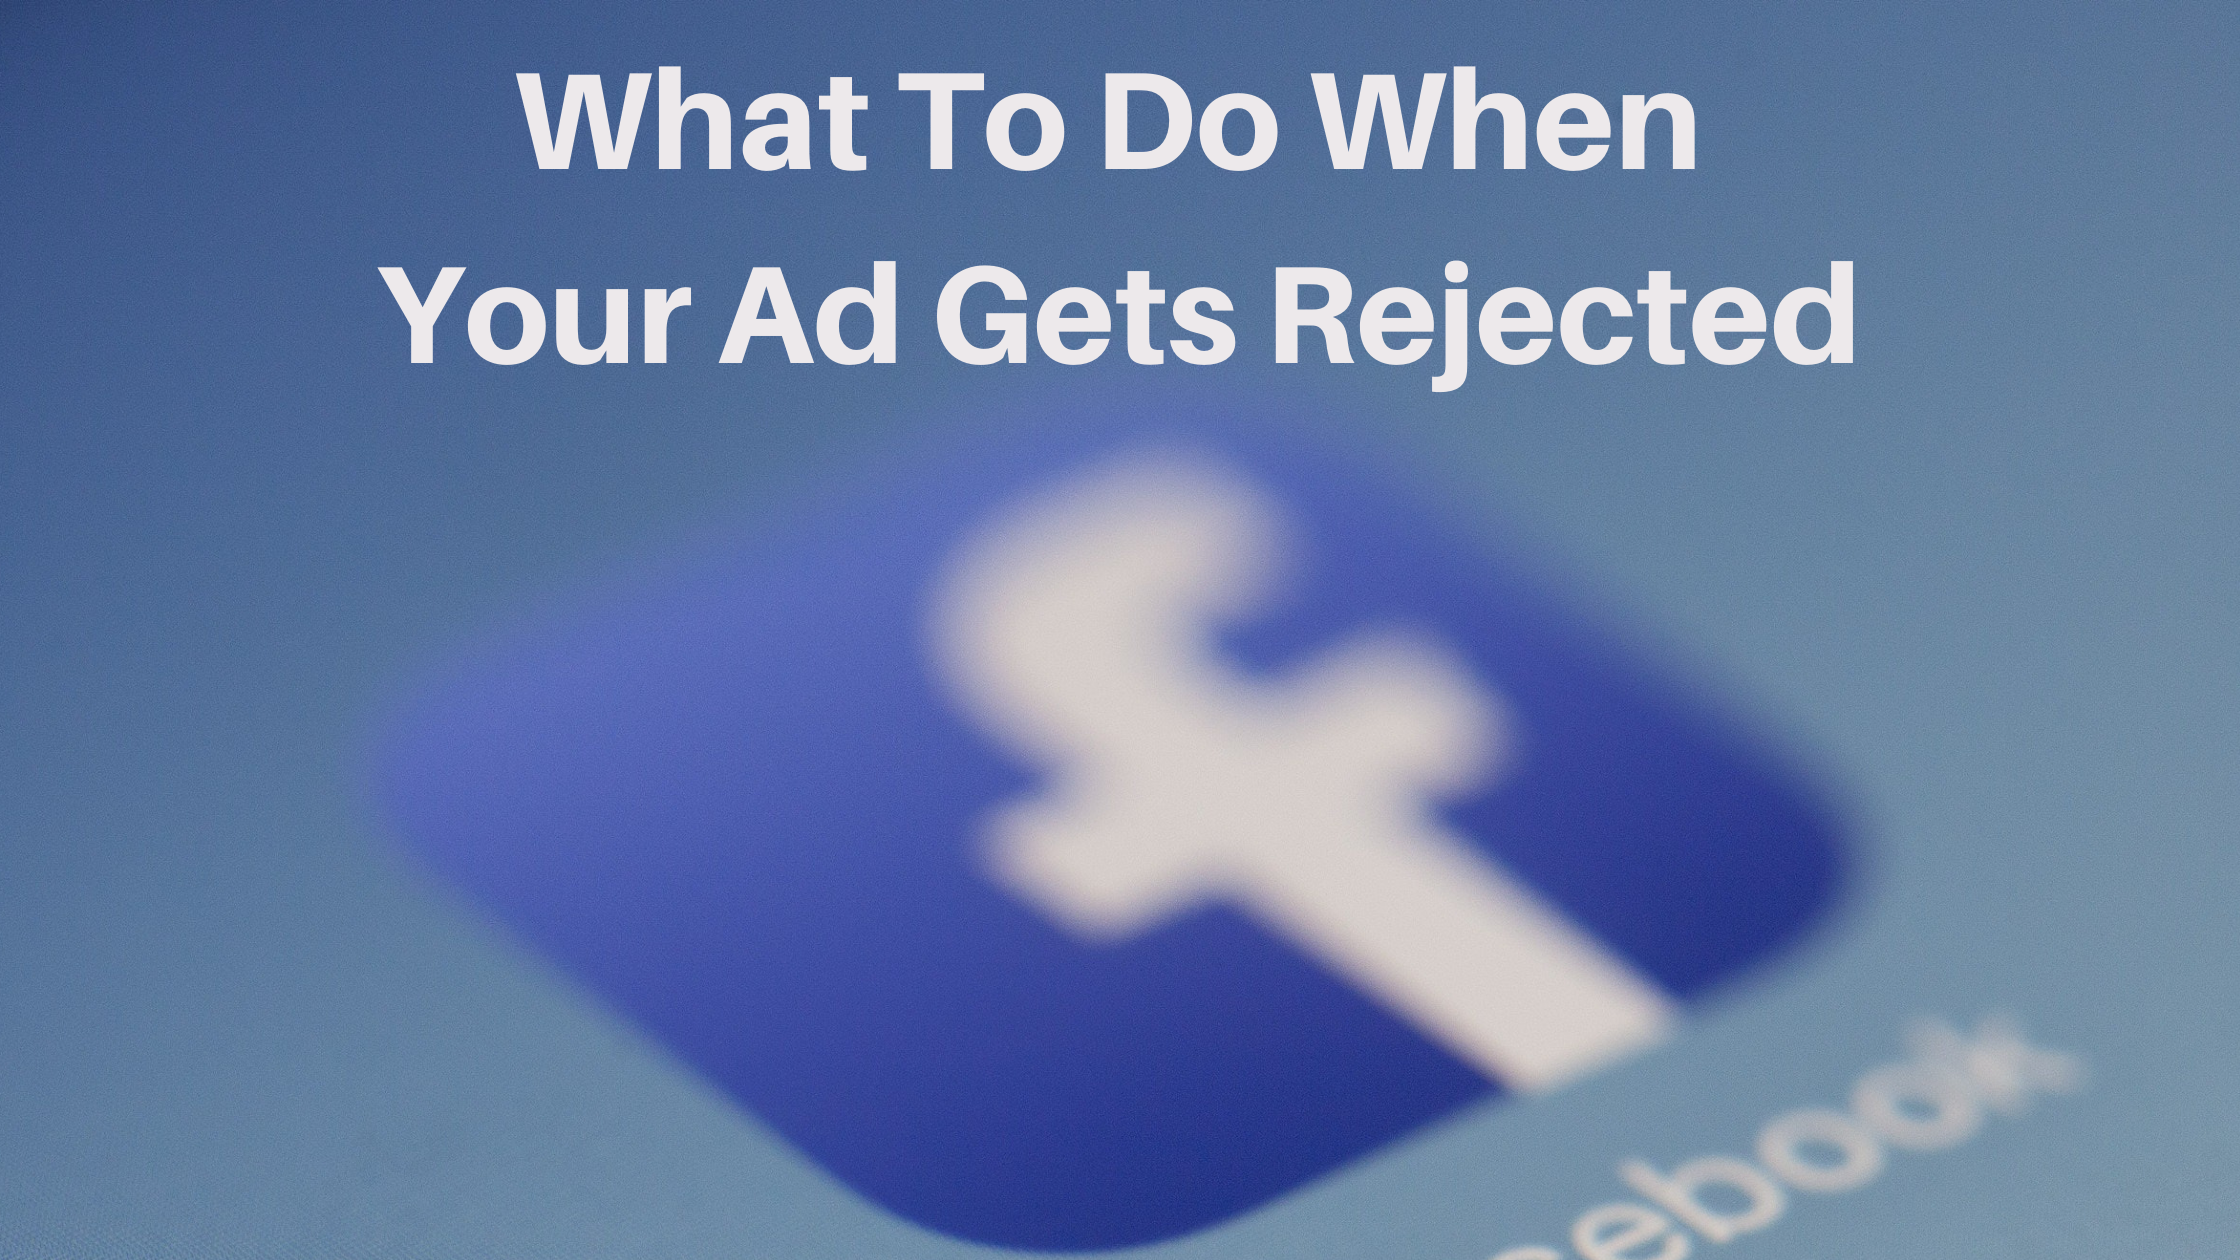 What To Do When Your Ad Gets Rejected